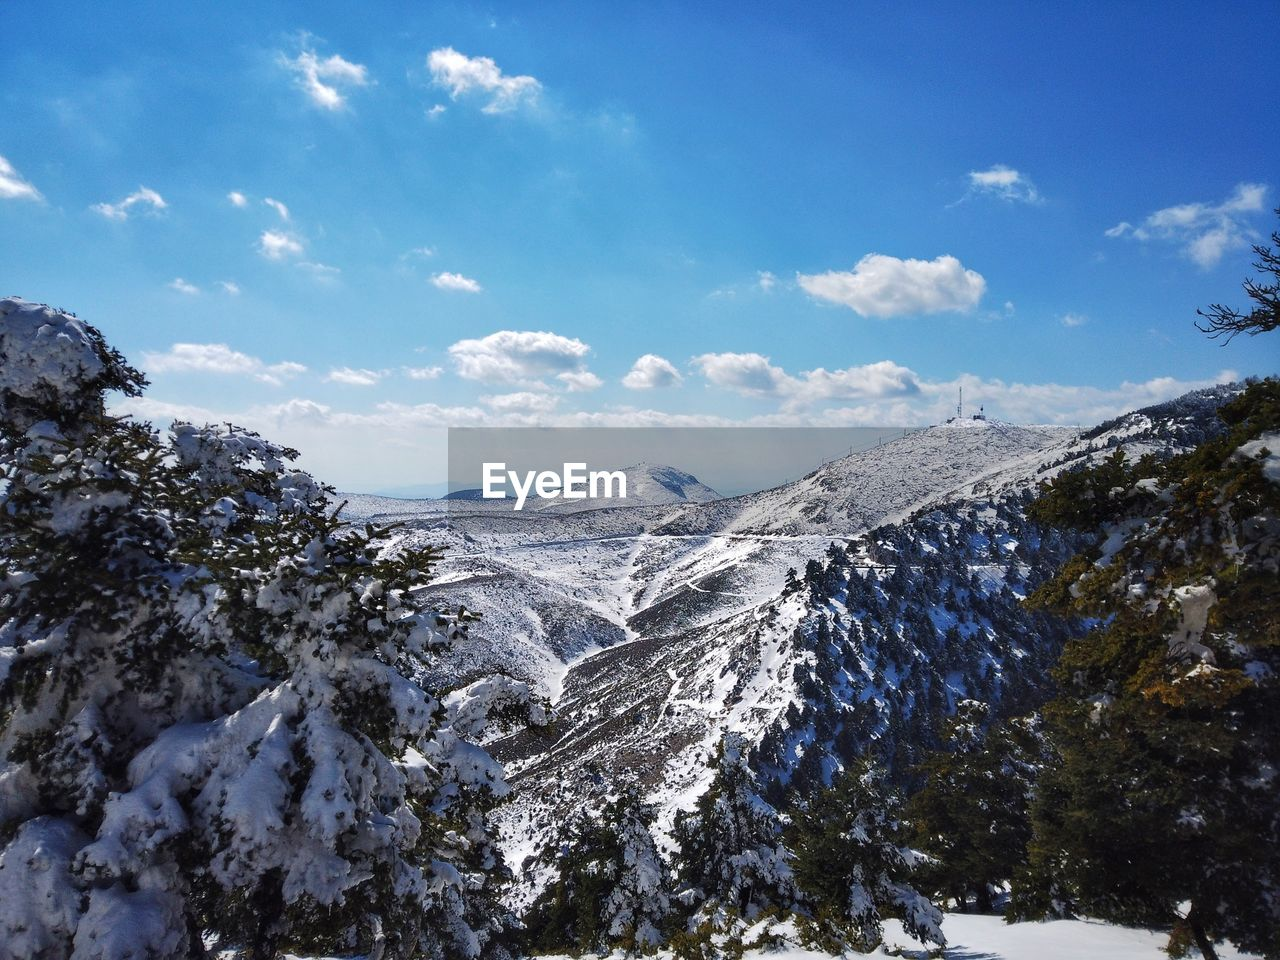 cold temperature, snow, winter, sky, cloud - sky, beauty in nature, scenics - nature, mountain, nature, snowcapped mountain, day, tranquility, non-urban scene, tranquil scene, environment, mountain range, no people, white color, landscape, outdoors, mountain peak, formation